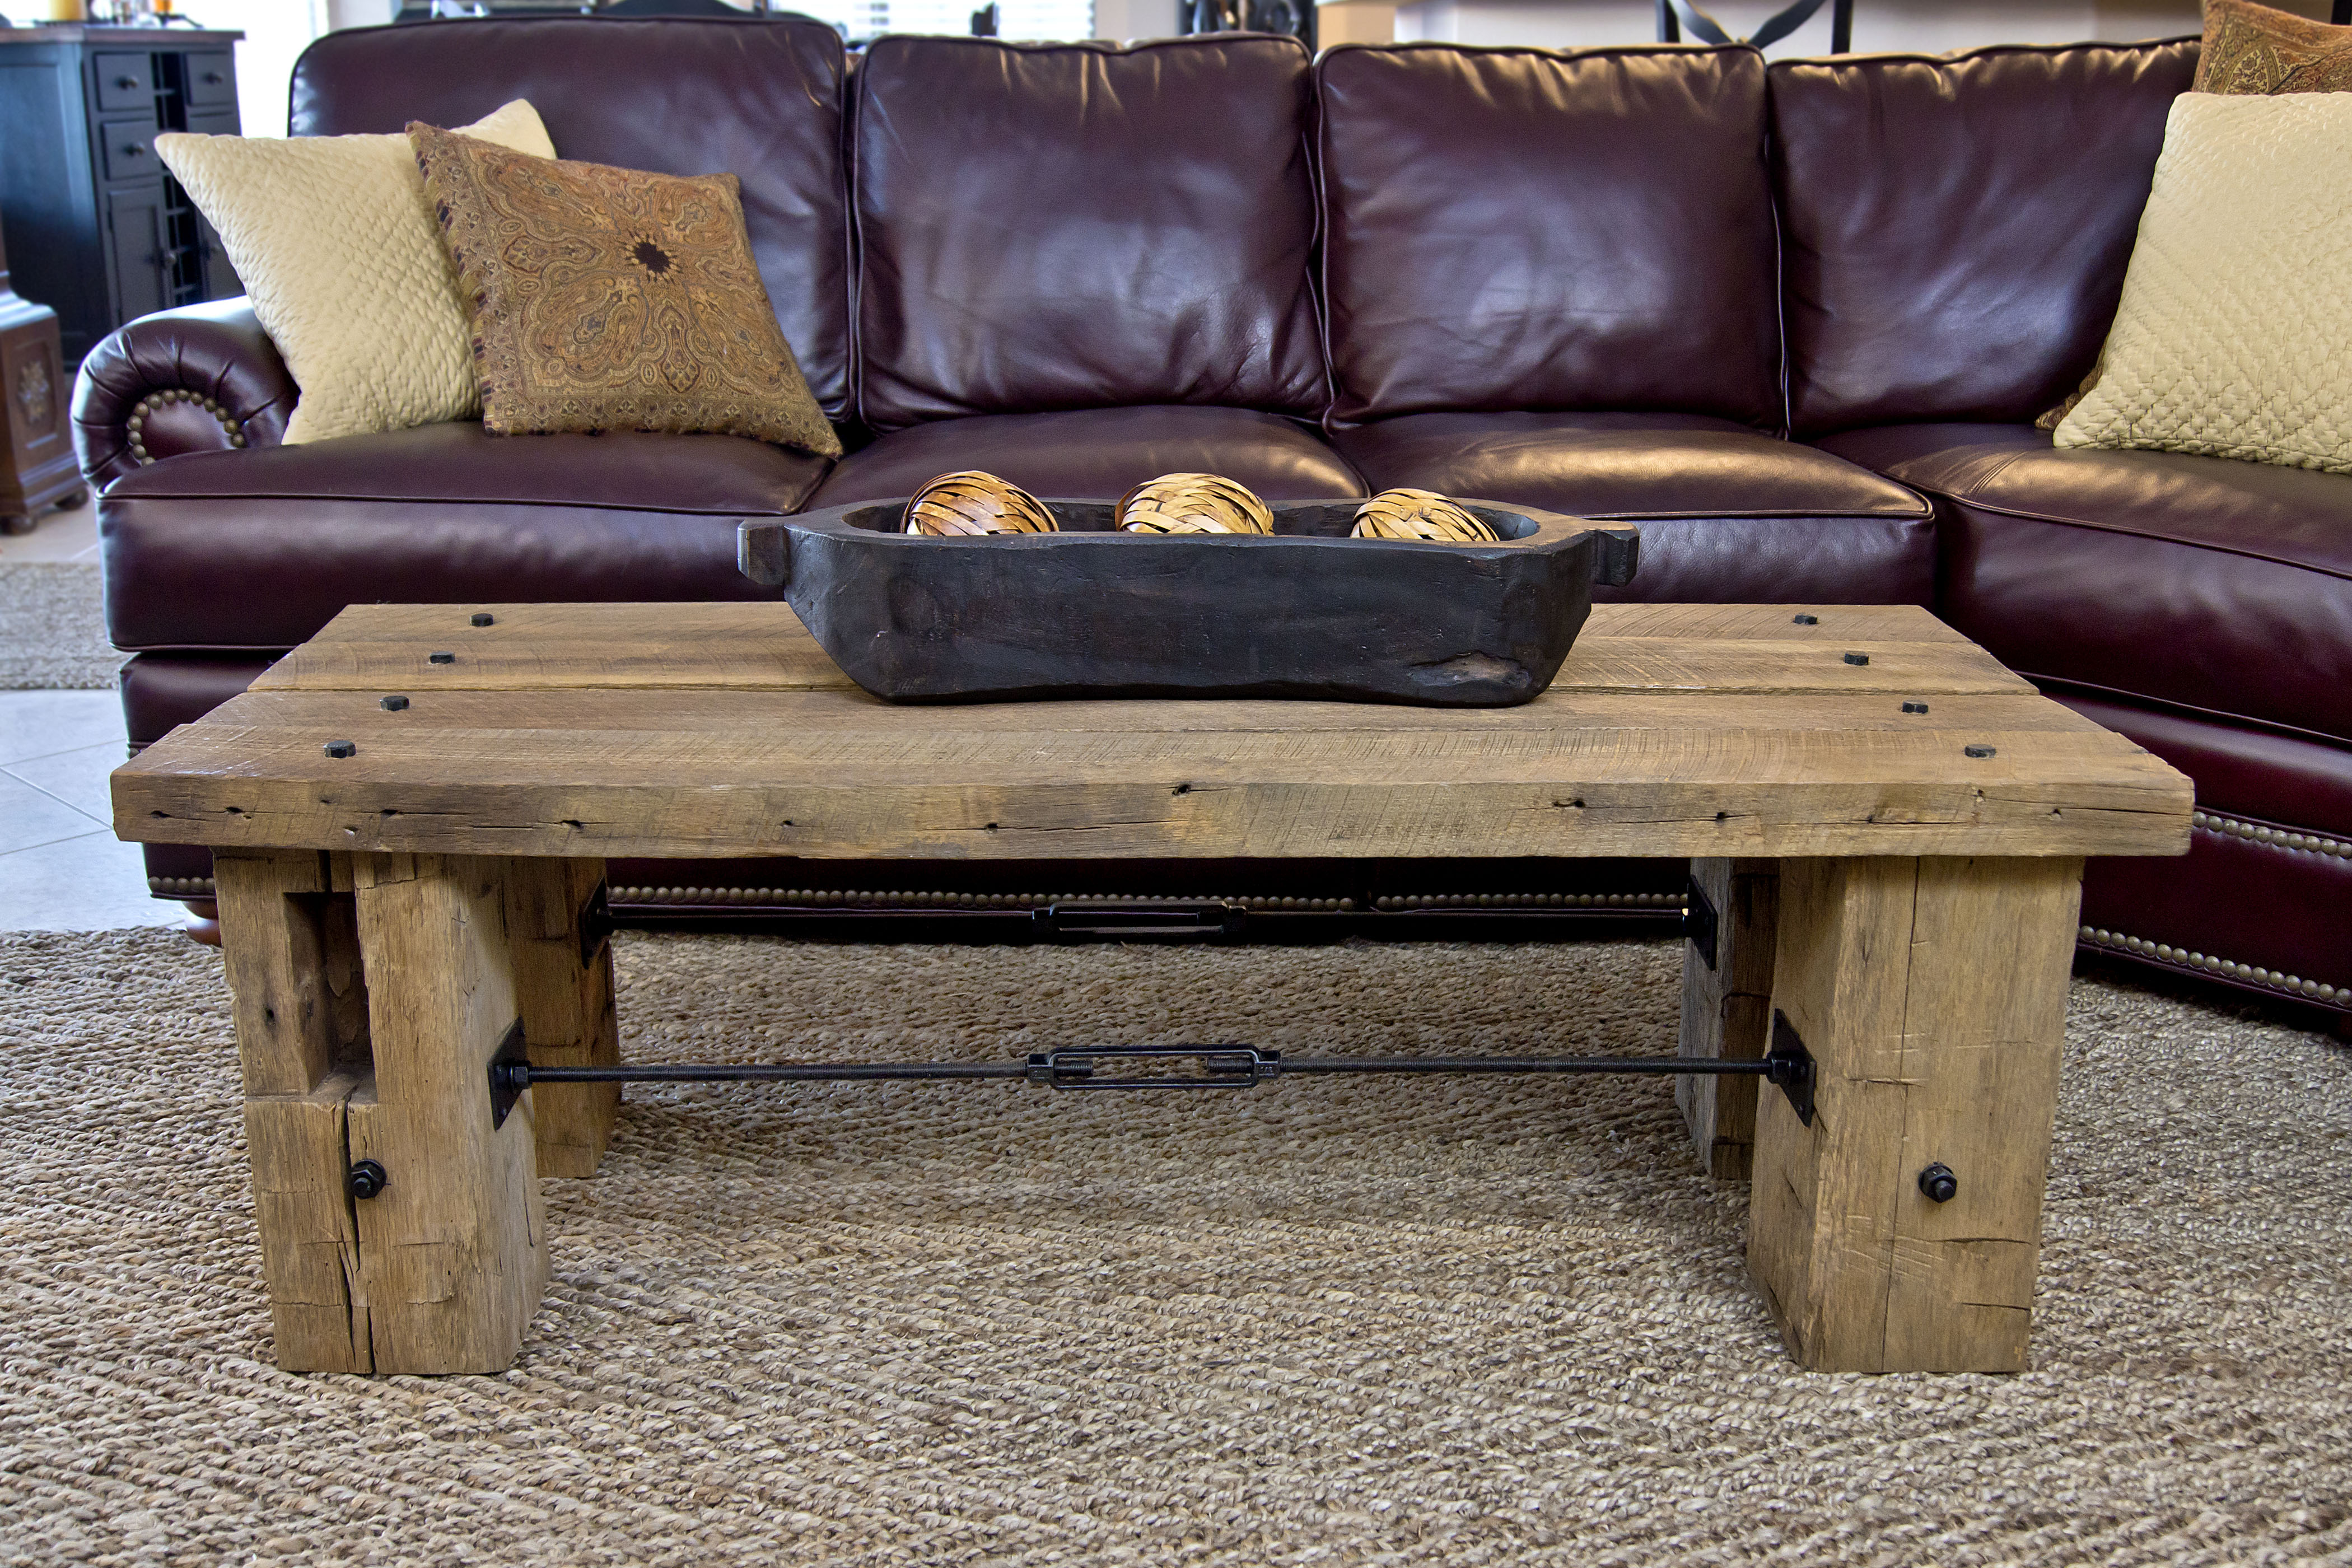 Turnbuckle coffee table yankeeinteriors turnbuckle coffee table geotapseo Image collections